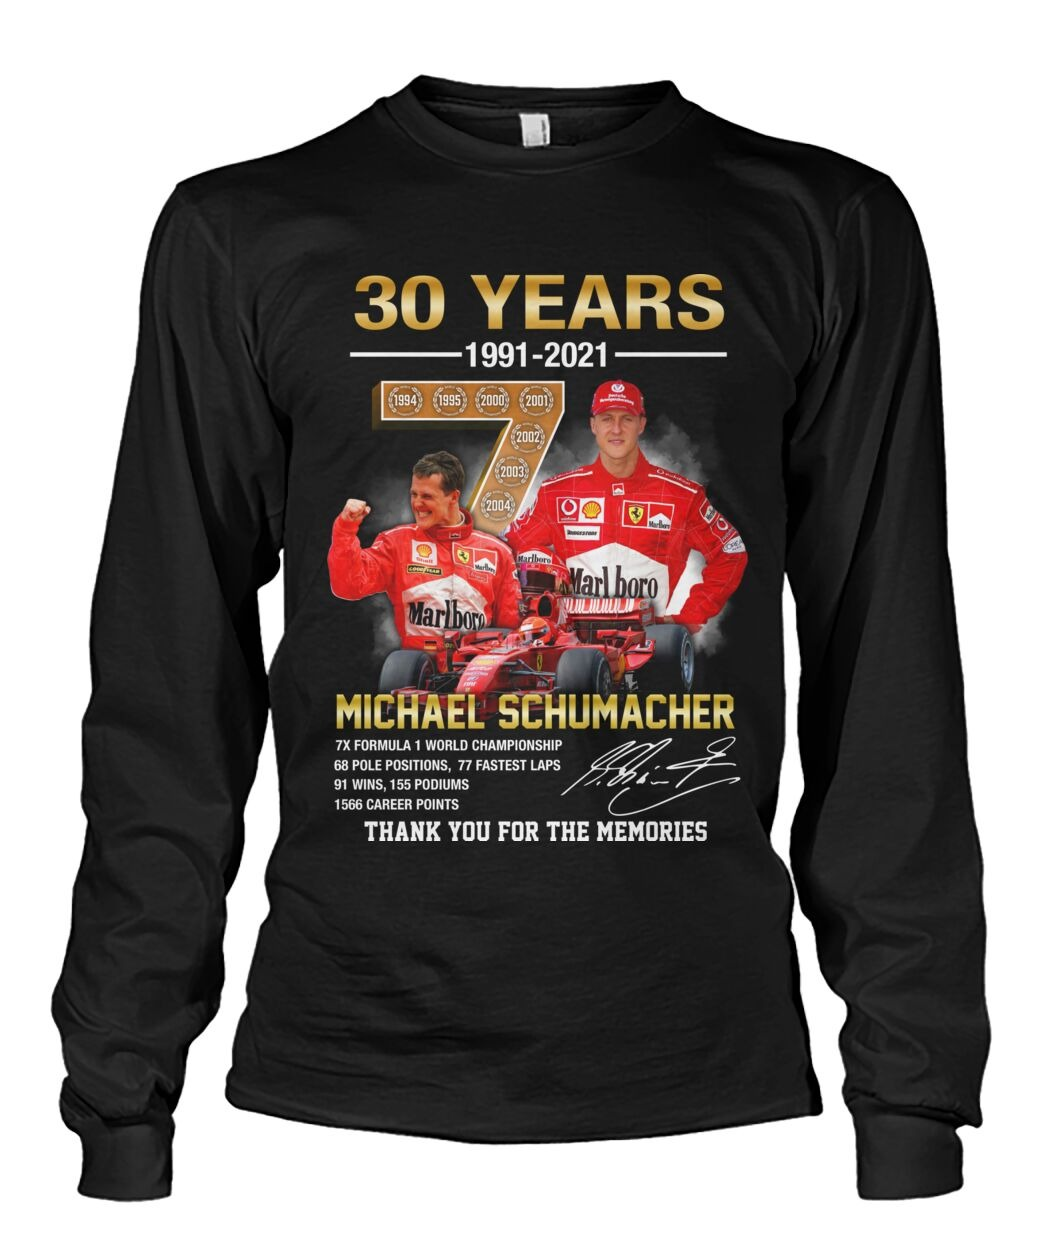 Michael schumacher 30 years thank you for the memories long sleeve